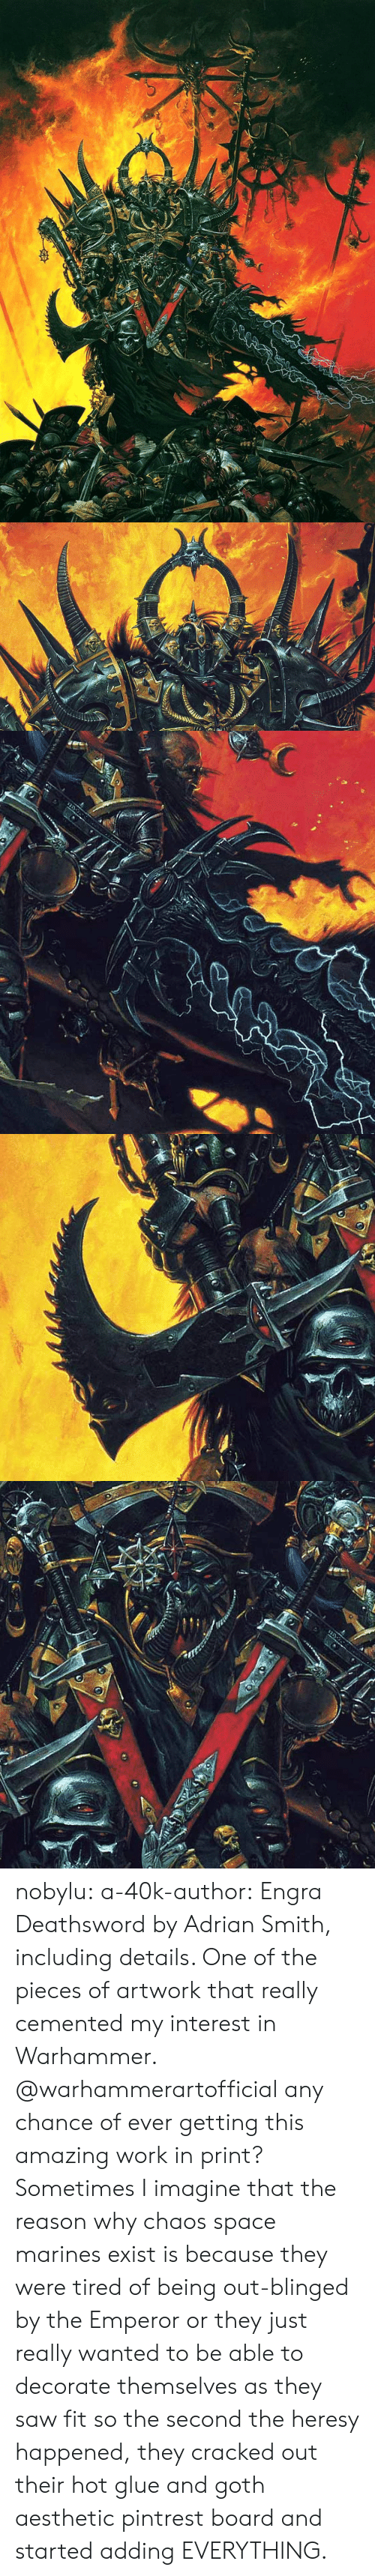 Saw, Tumblr, and Work: nobylu:  a-40k-author: Engra Deathsword by Adrian Smith, including details. One of the pieces of artwork that really cemented my interest in Warhammer.  @warhammerartofficial any chance of ever getting this amazing work in print?    Sometimes I imagine that the reason why chaos space marines exist is because they were tired of being out-blinged by the Emperor or they just really wanted to be able to decorate themselves as they saw fit so the second the heresy happened, they cracked out their hot glue and goth aesthetic pintrest board and started adding EVERYTHING.